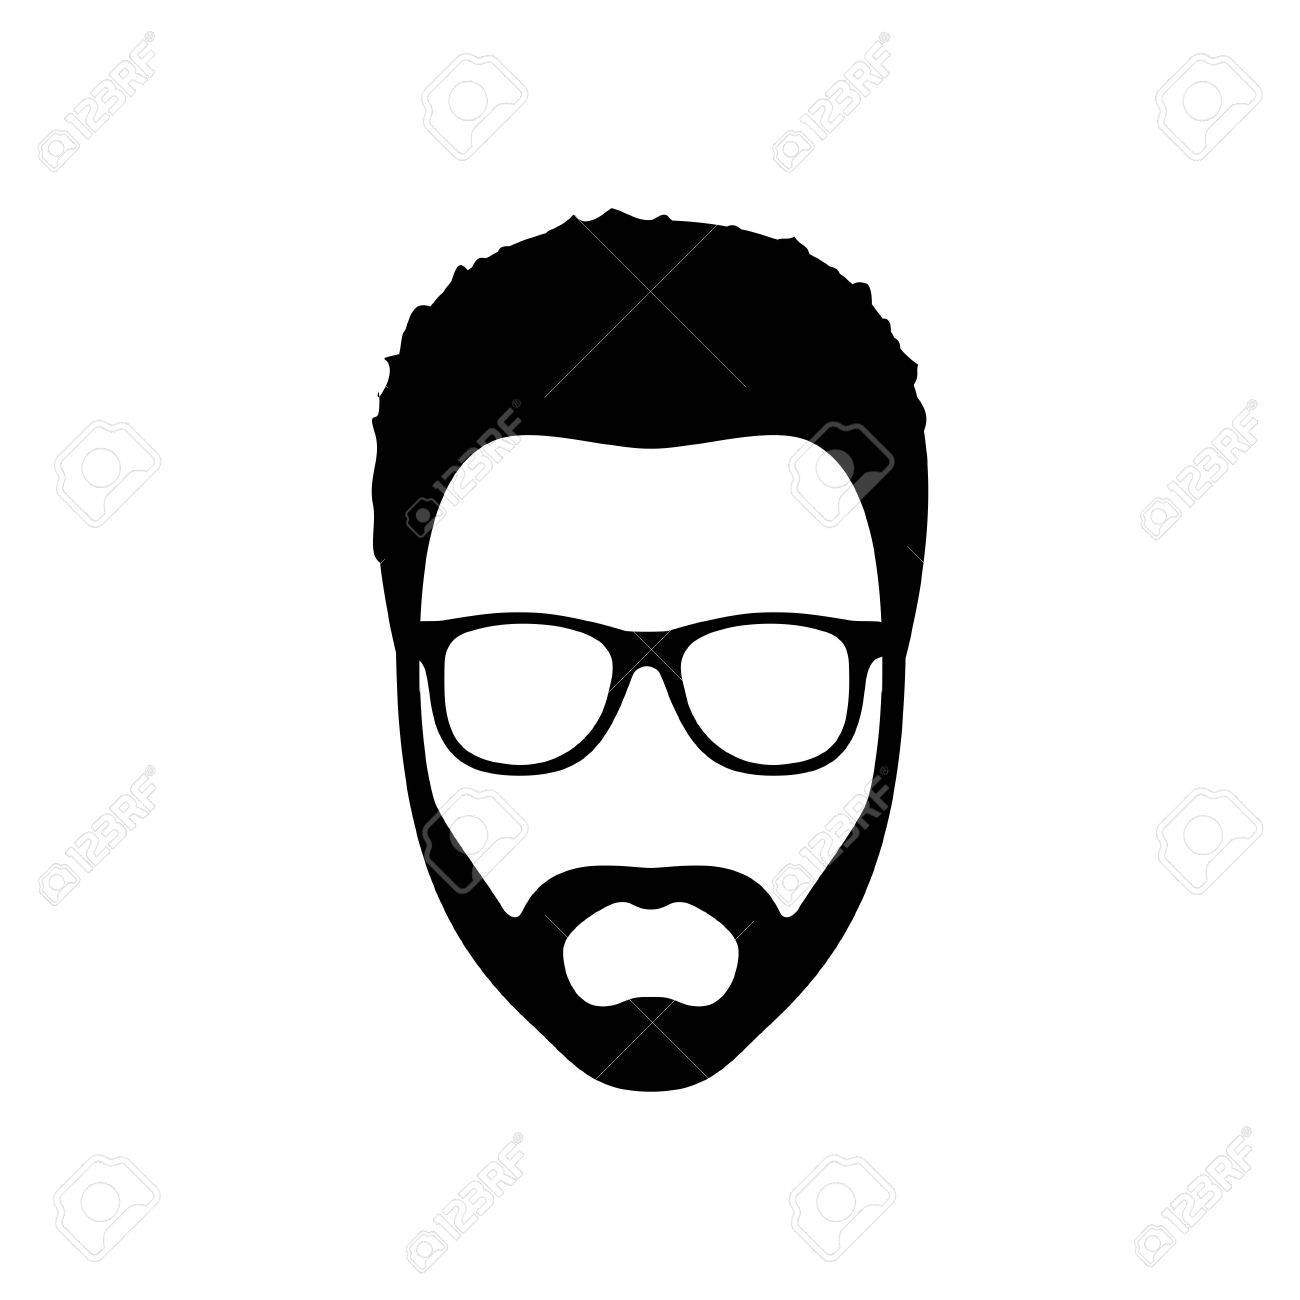 Hipster man. Hairstyle, beard and glasses in flat style. Black Fashion silhouette hipster icon isolated on white background. Vector Illustration - 57872288